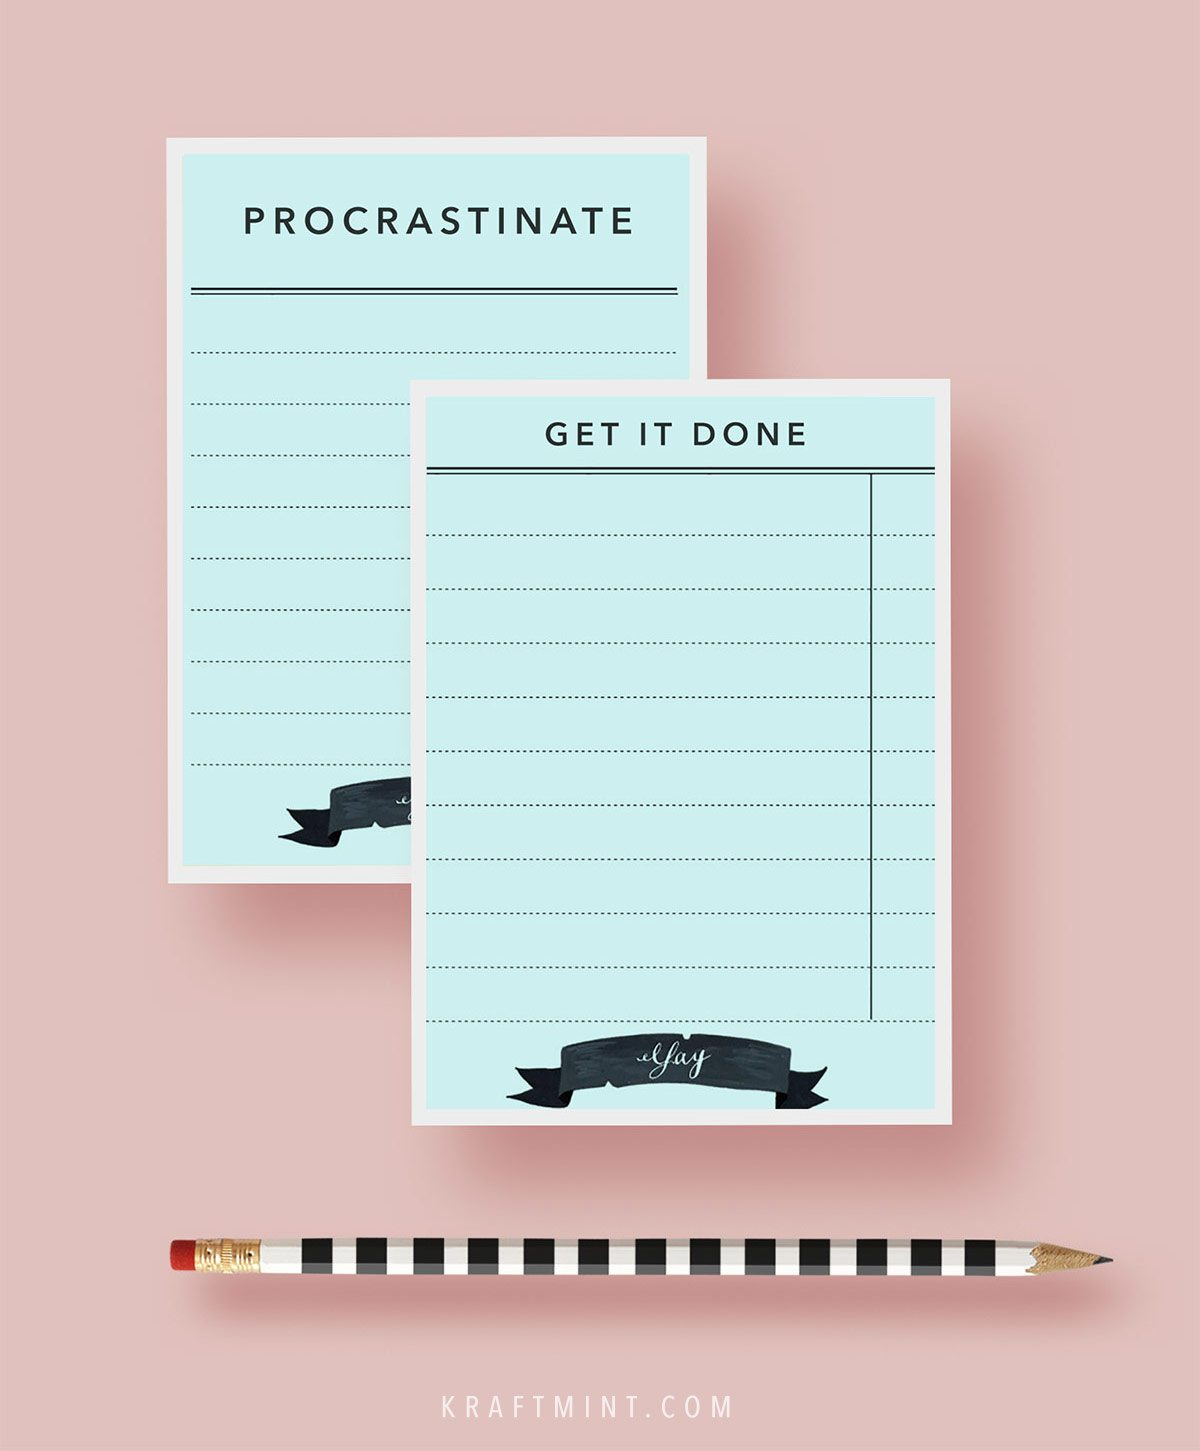 Get it done or Procrastinate?